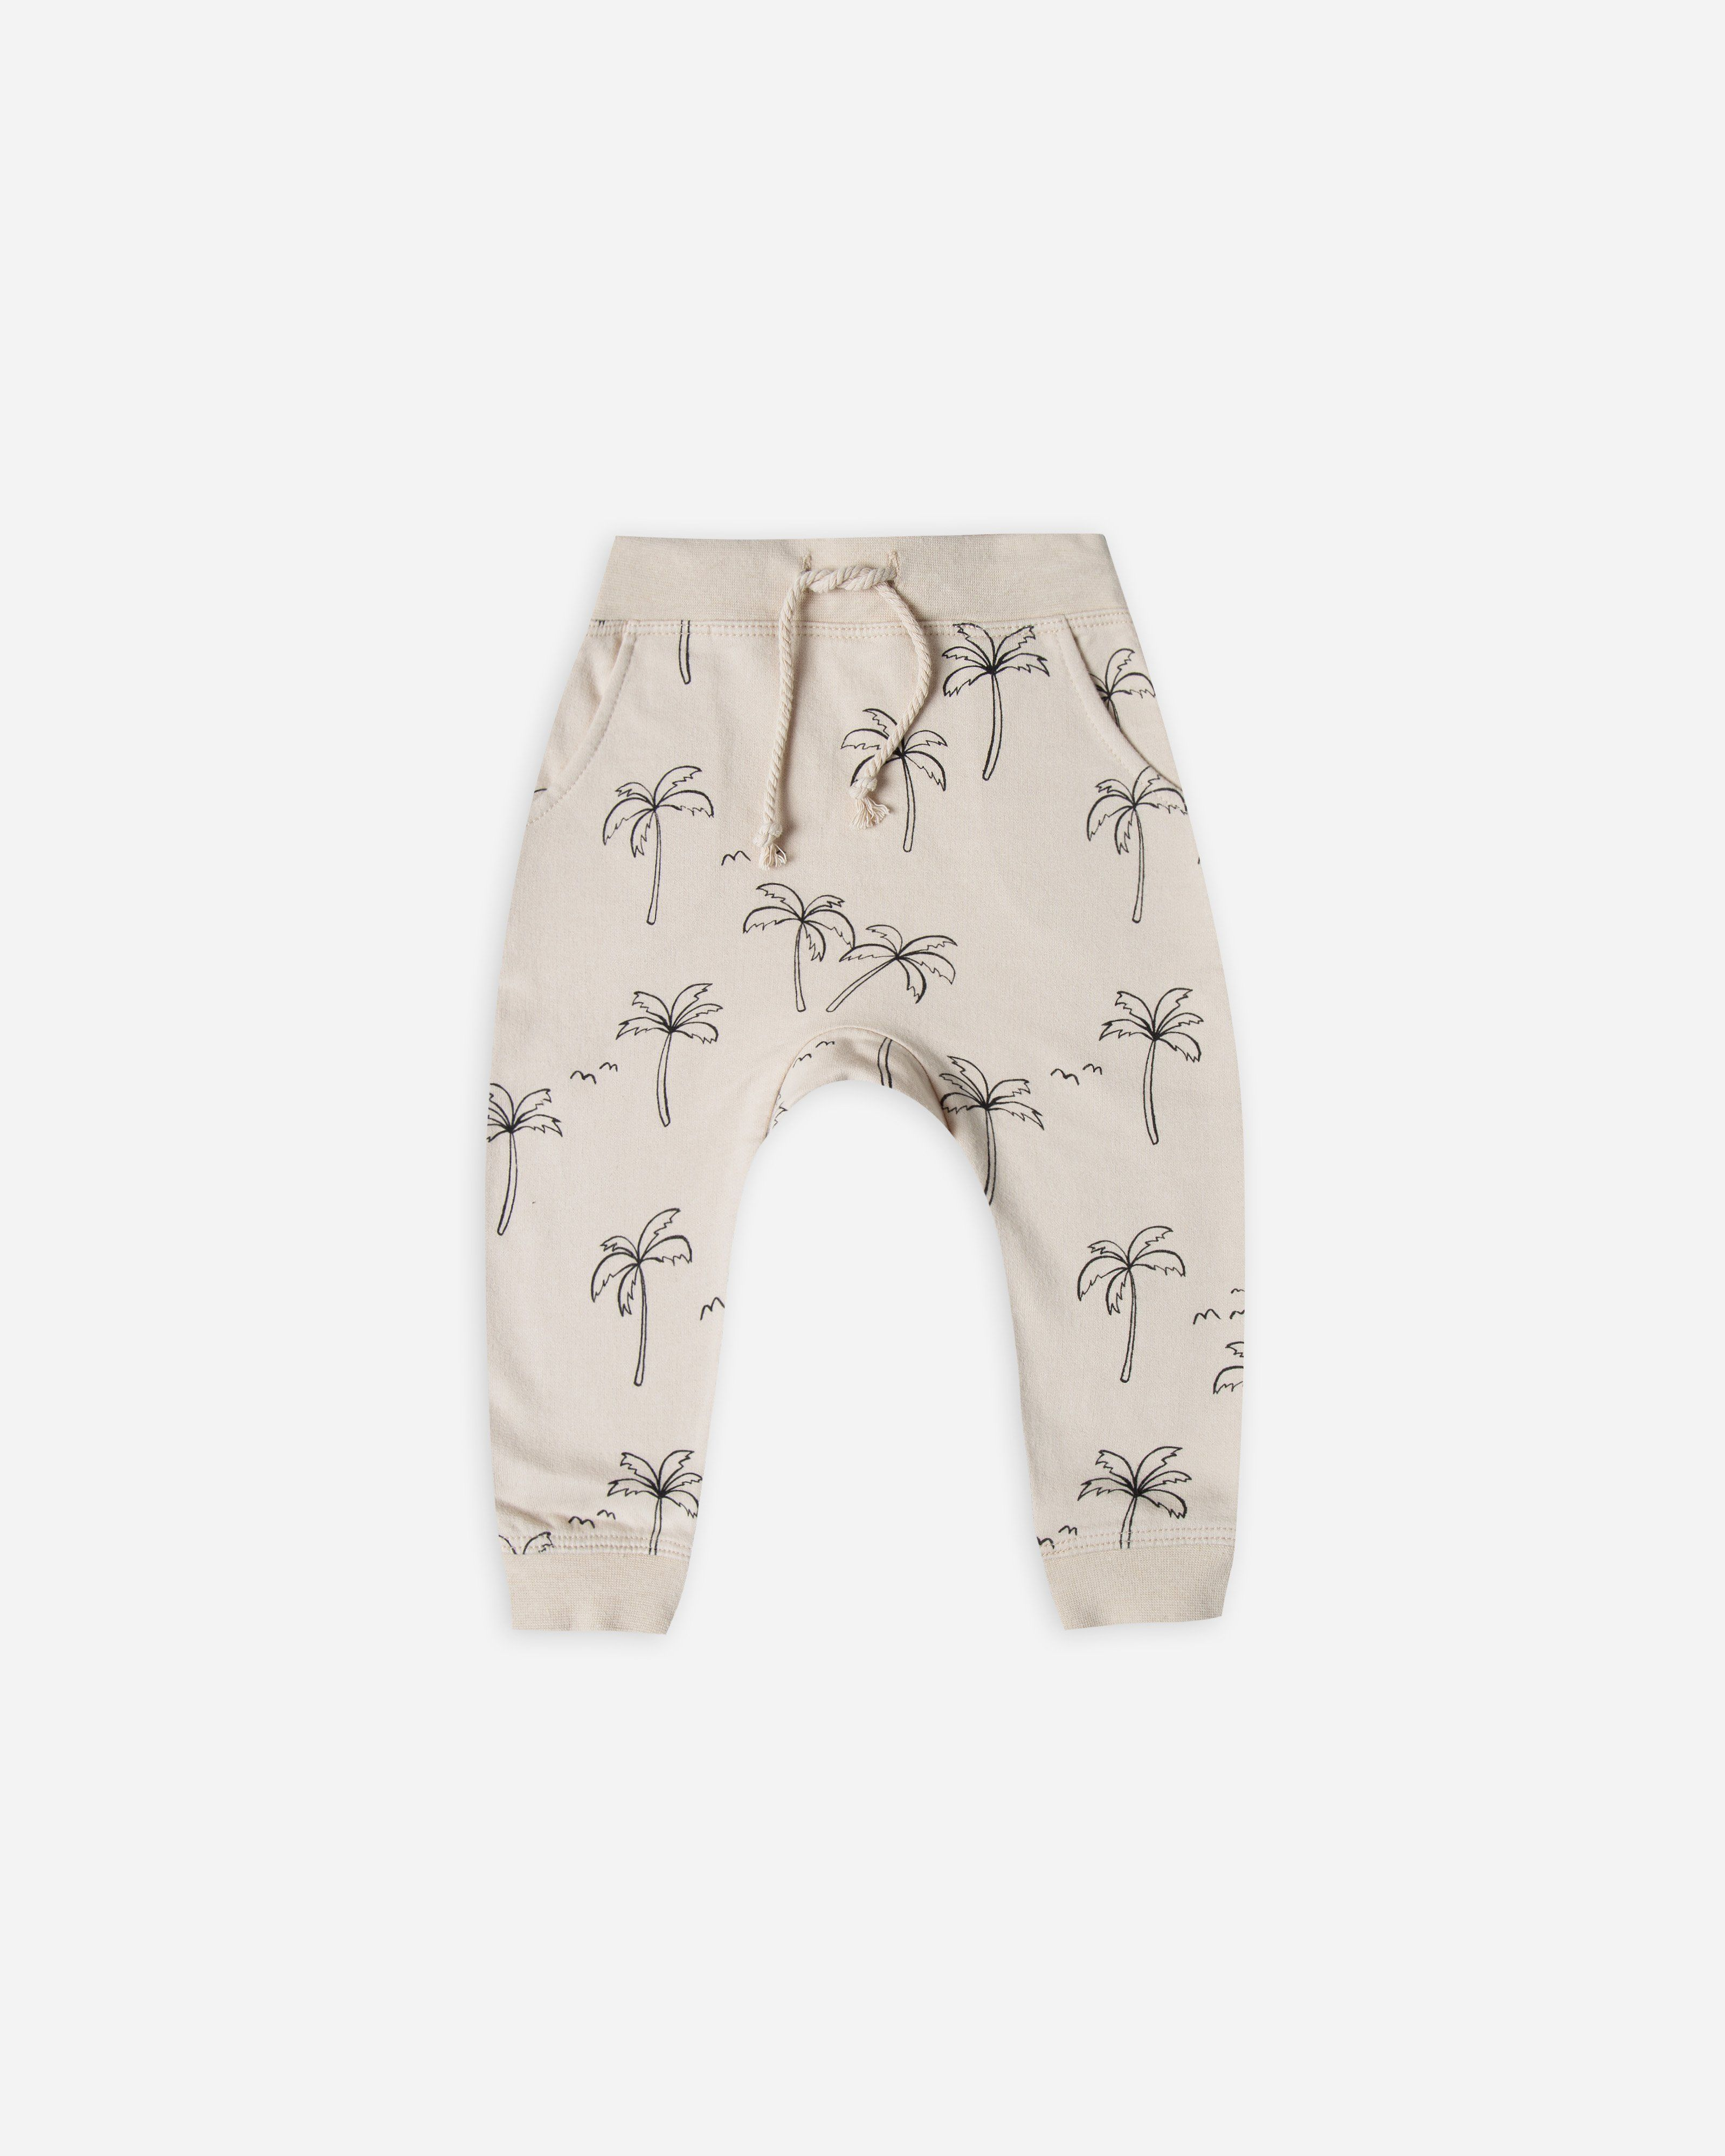 a08c693cd424 Sweatpant with all-over palm tree print. Side pockets